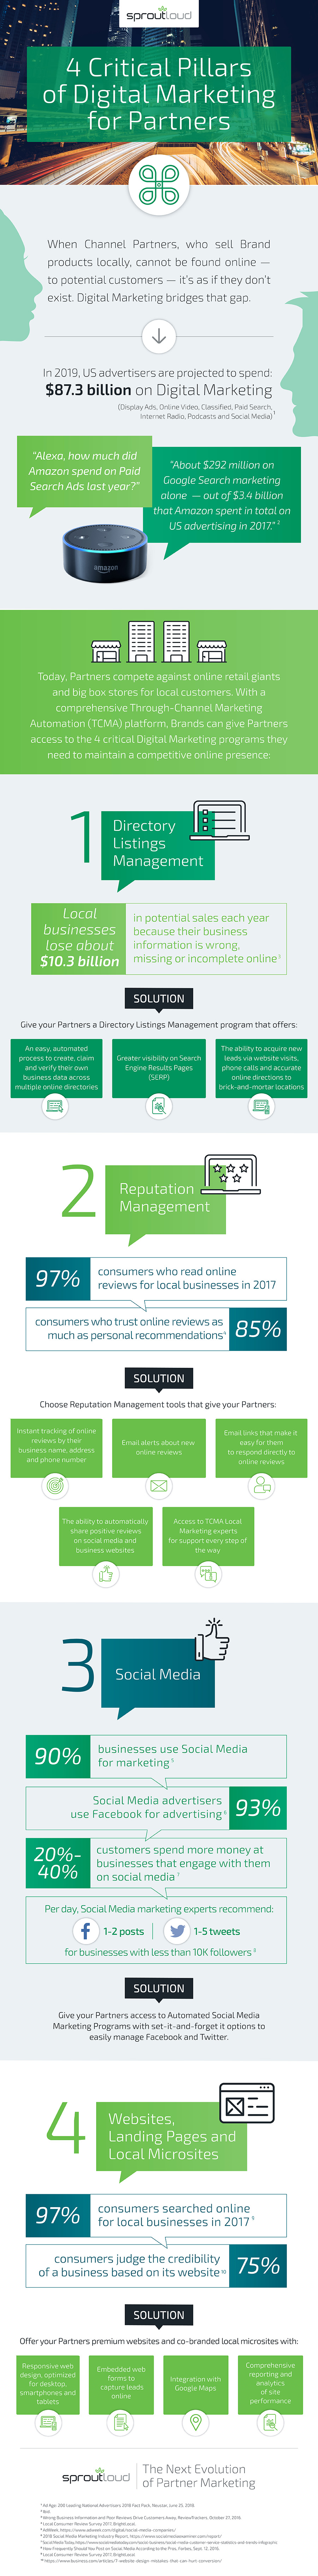 Infographic - 4 Critical Pillars of Digital Marketing for Partners